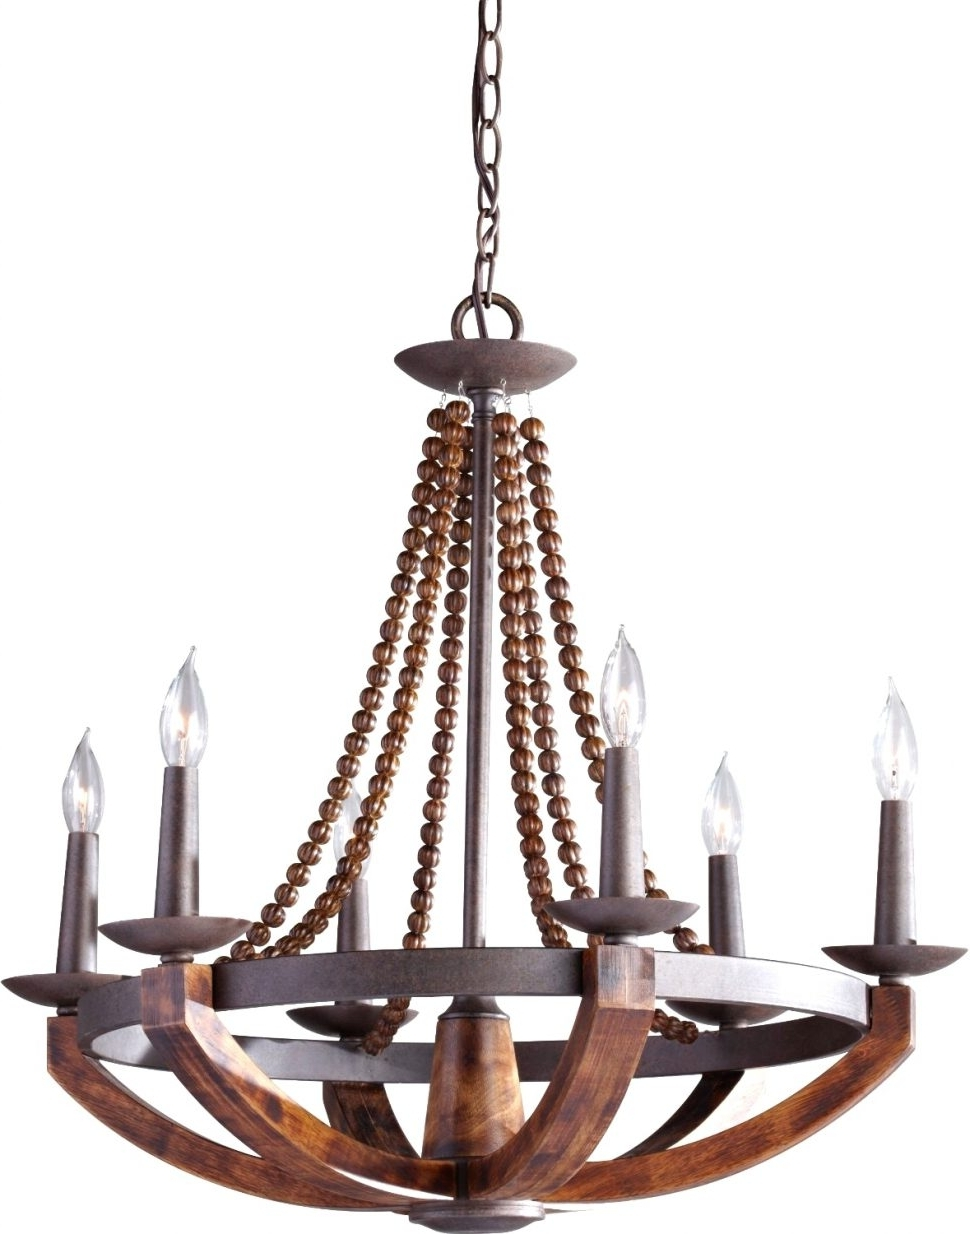 Light : Large Rustic Chandelier Lighting With Best Wood And Metal In Most Current Metal Ball Candle Chandeliers (View 9 of 15)